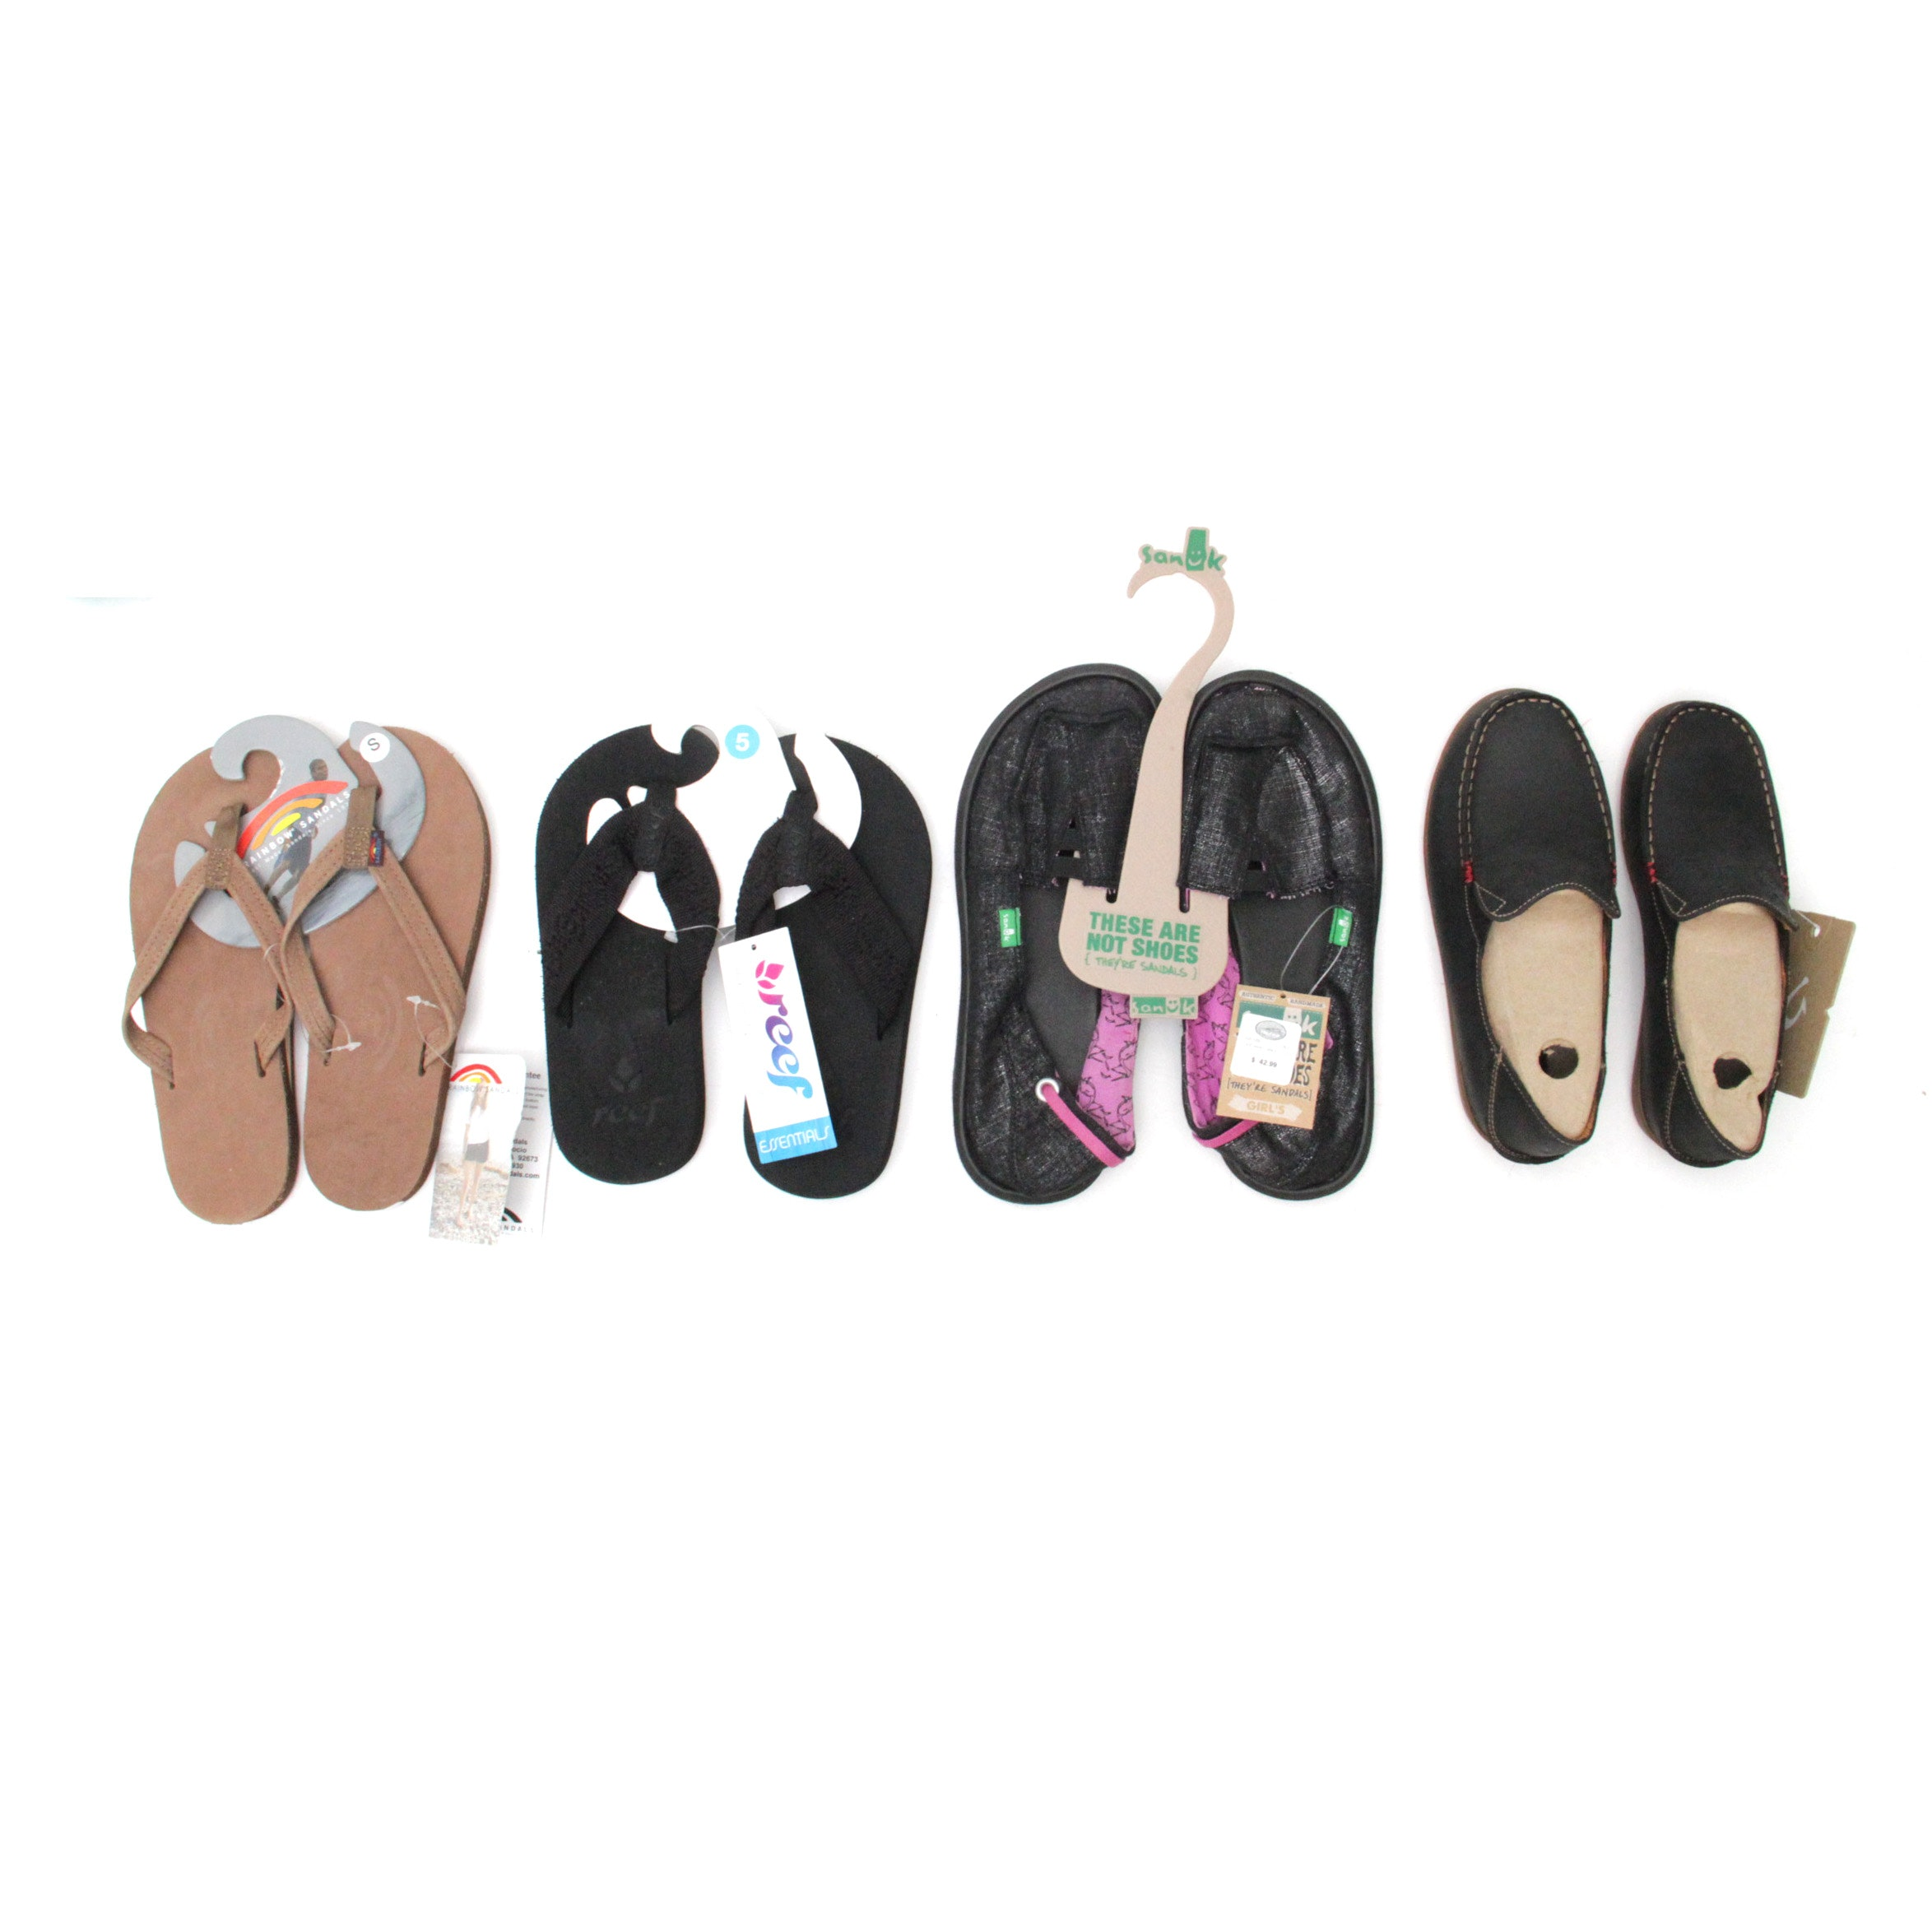 New Women's Flip-Flops, Water Sandals and OluKai Shoes Size 5